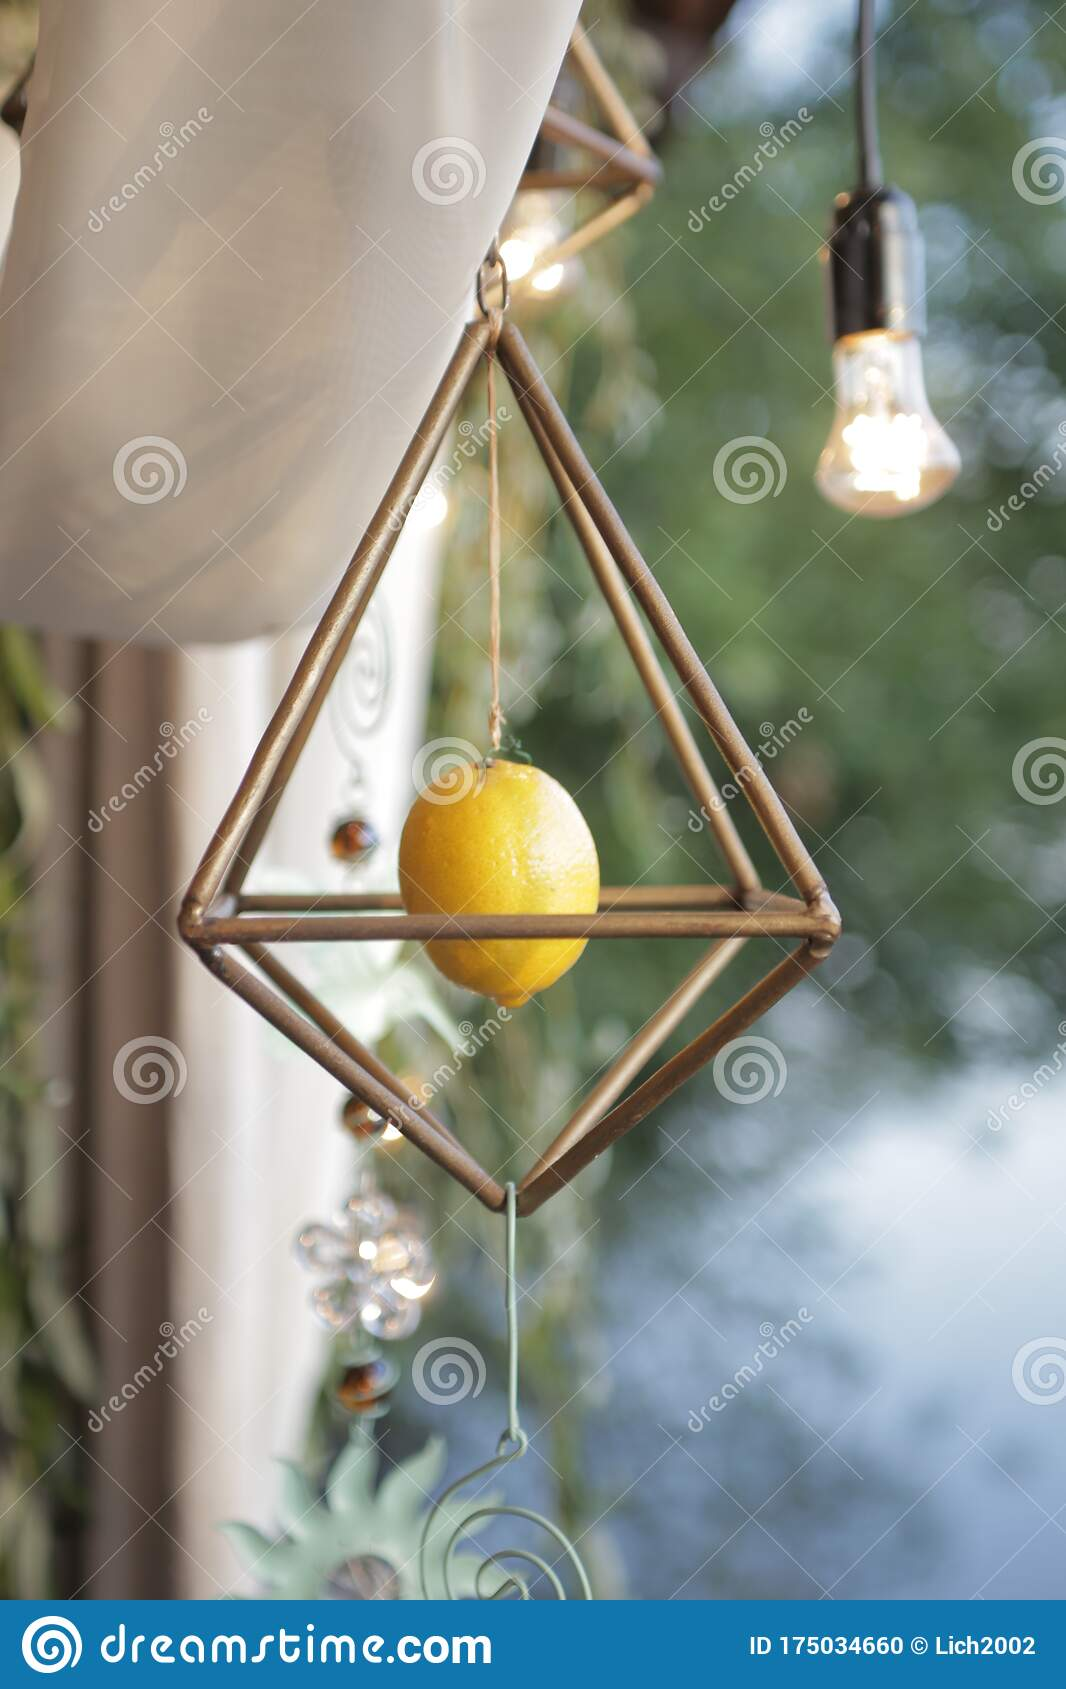 Decor In The Form Of A Lemon In A Suspended Cage With Flower Pendants Stock Photo Image Of Metallic Bokeh 175034660